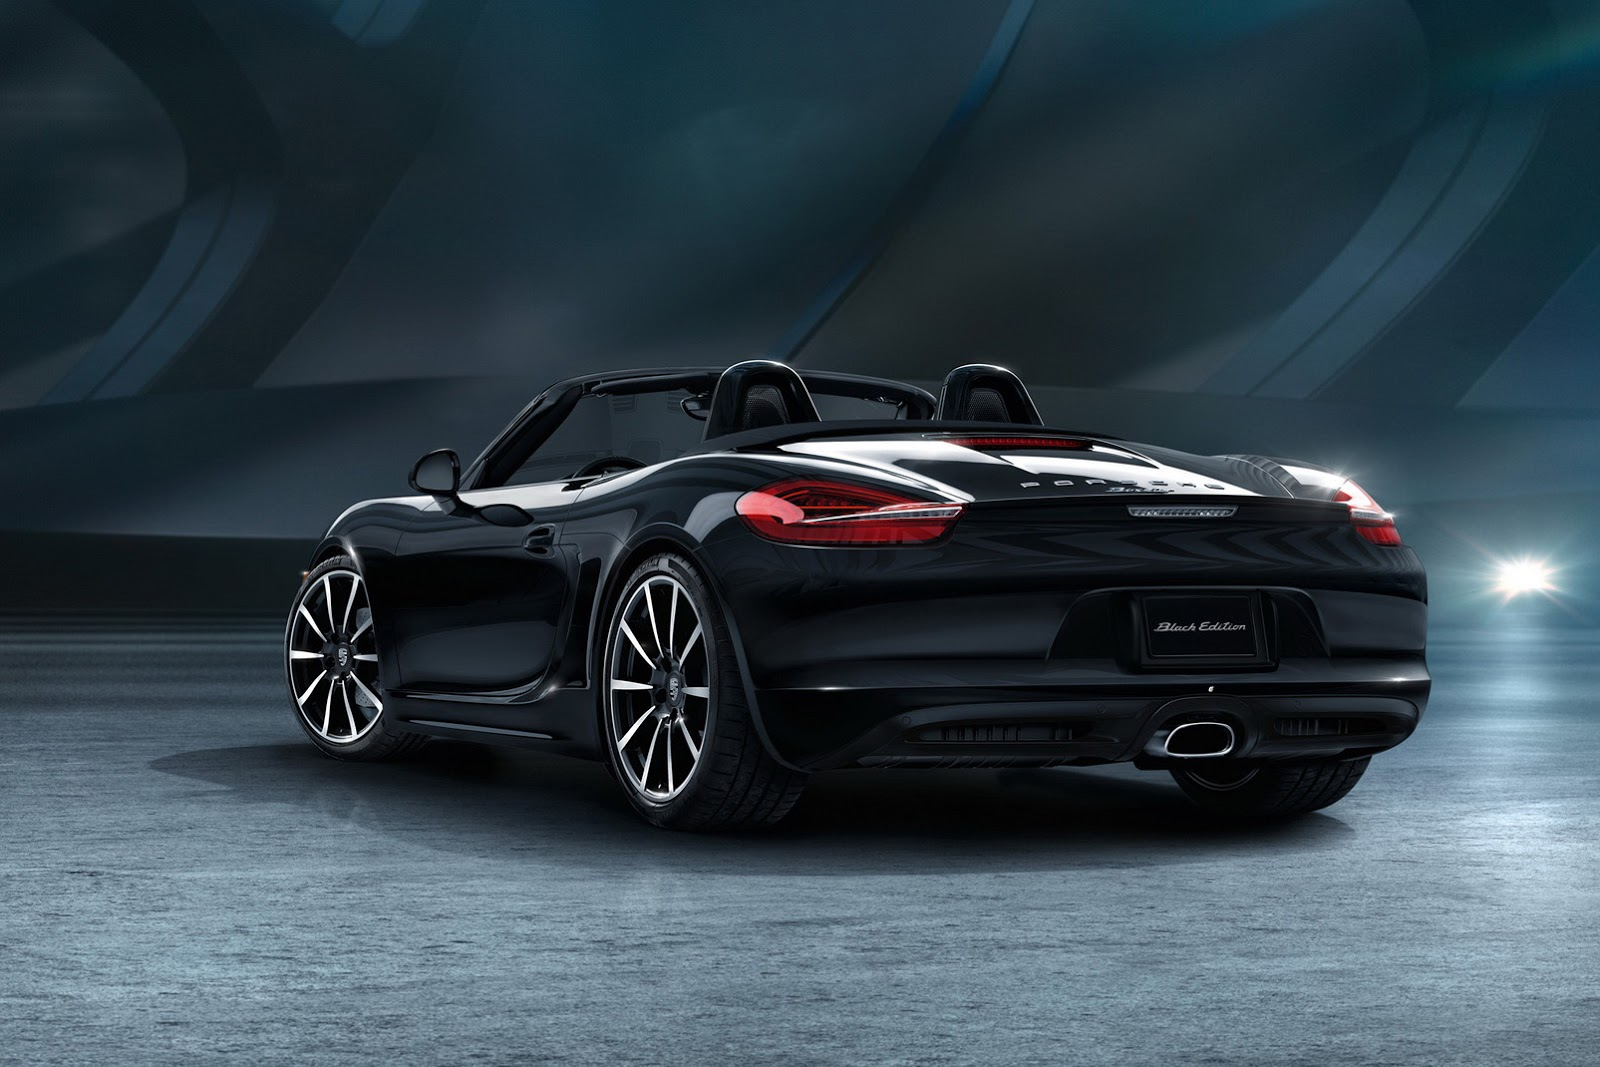 here's your gallery of porsche's new 911 and boxster black editions